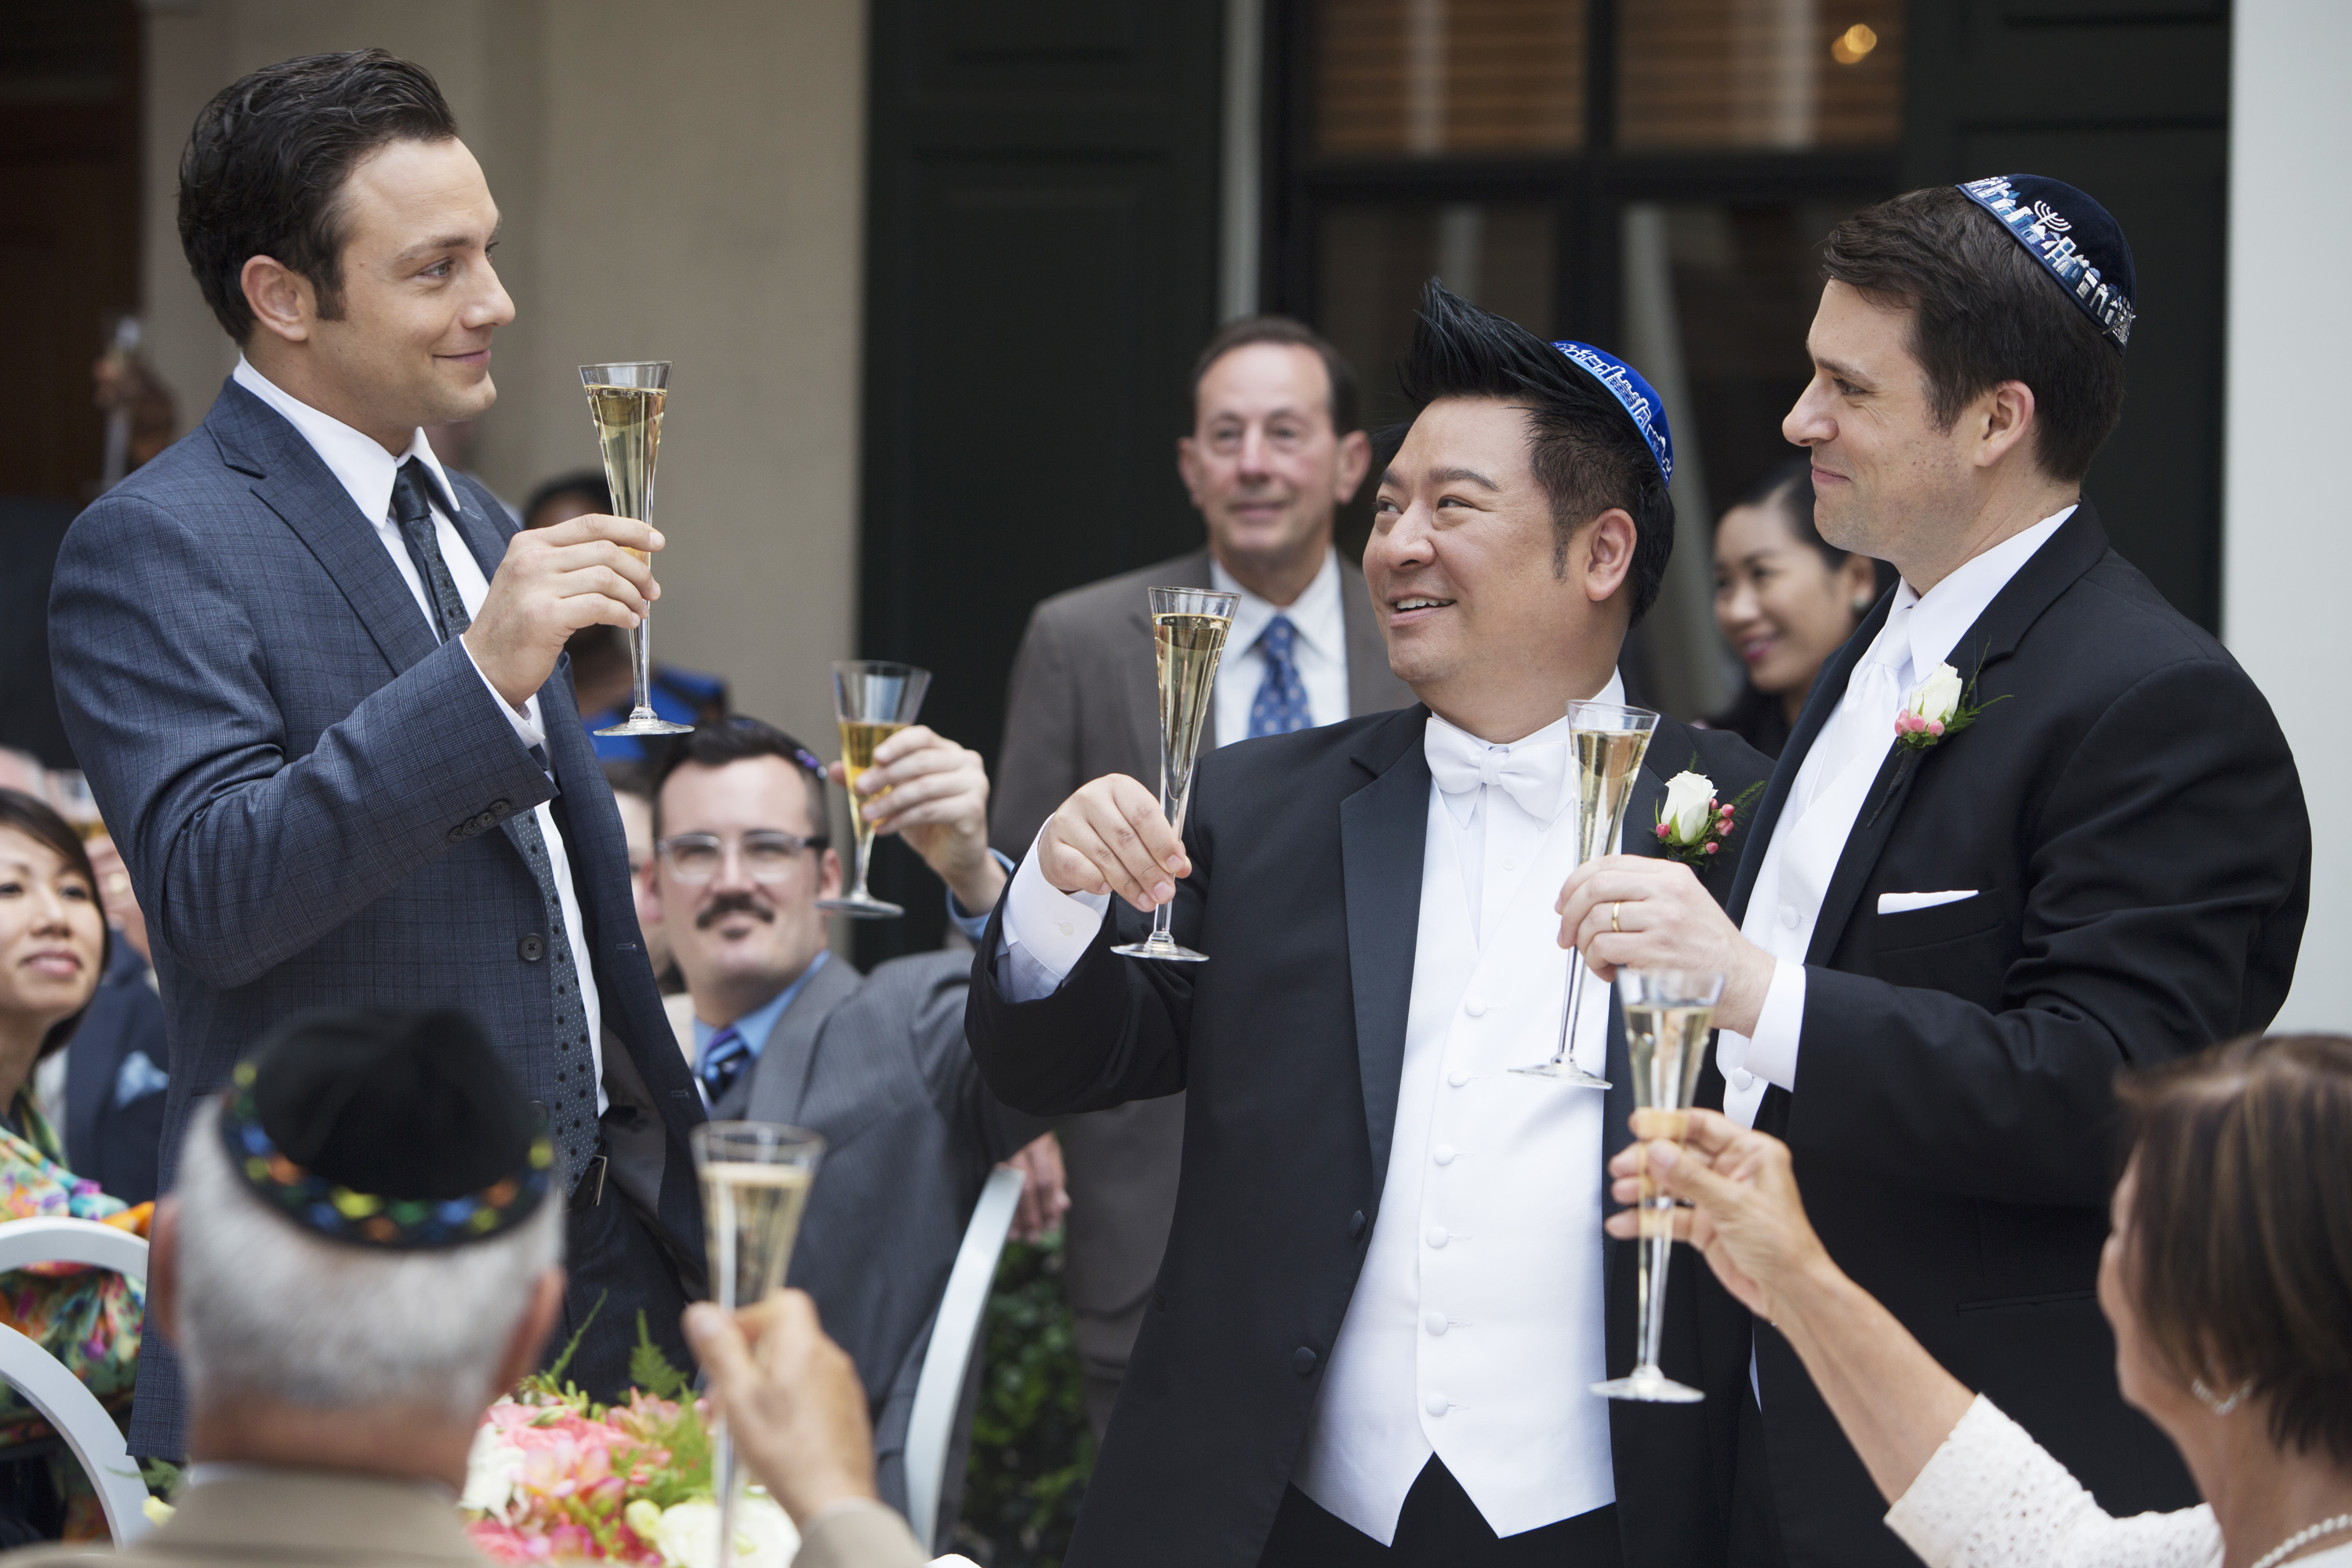 Credit: Young & Hungry ABC Family/Free Form